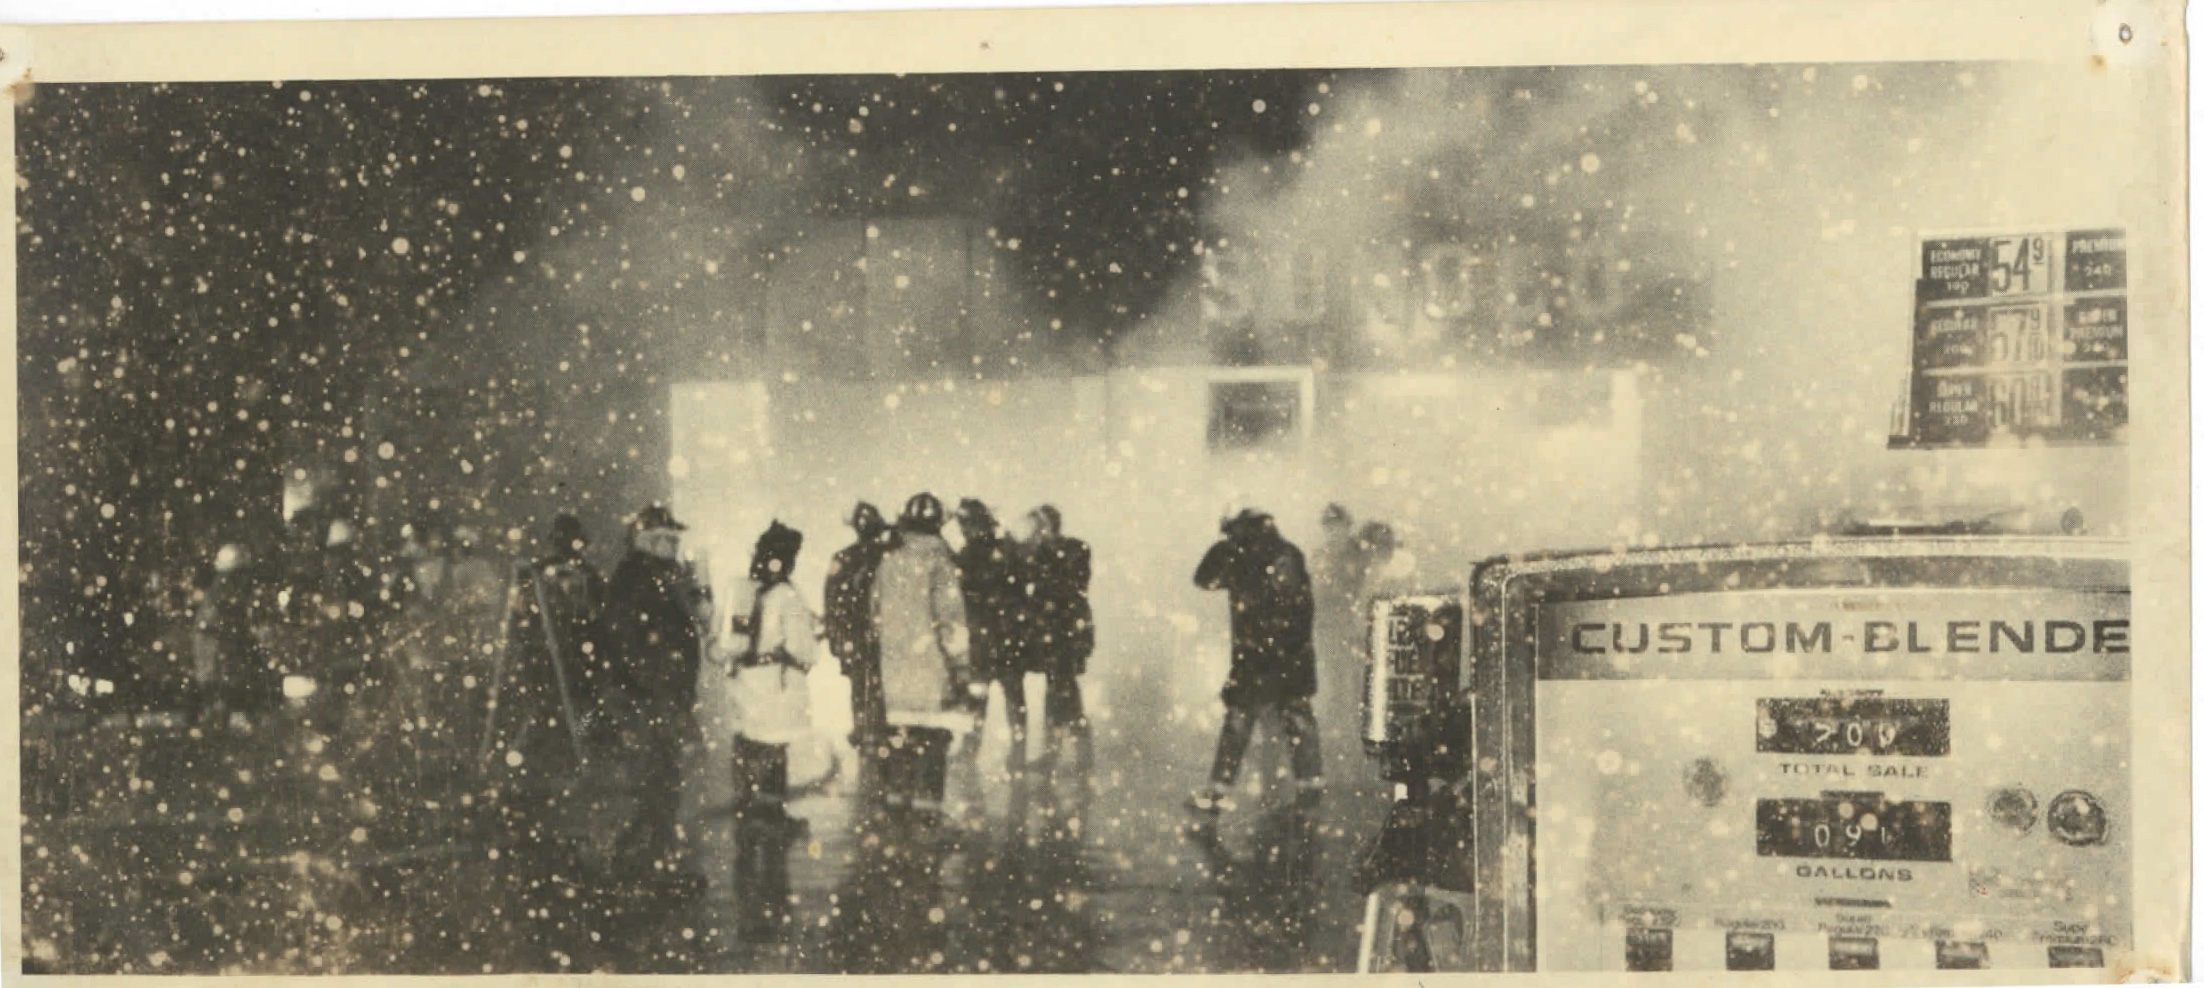 1970's Corbo's Sunoco fire.22 and Gaston_Page_1_Image_0001.jpg